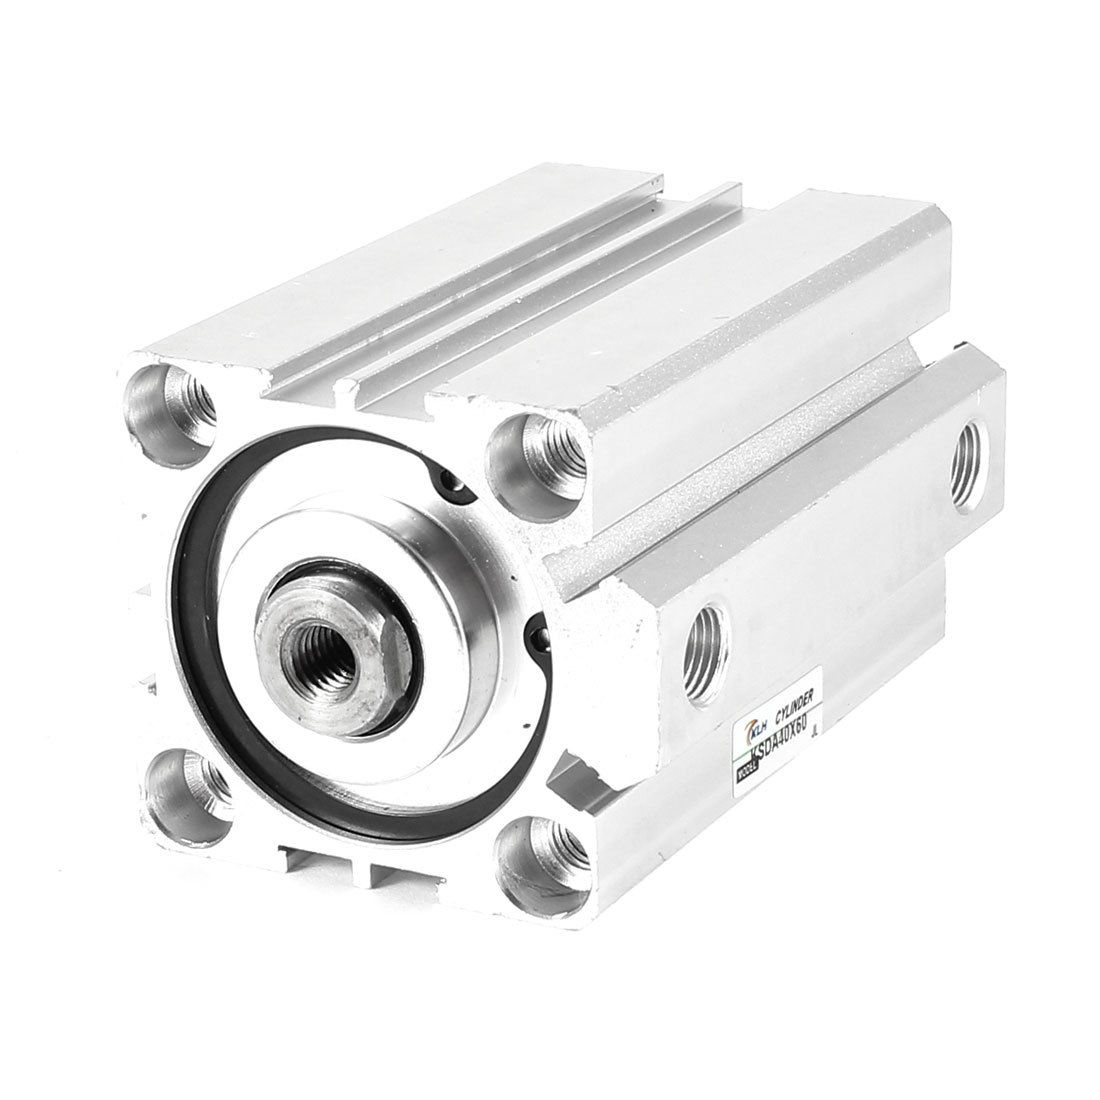 1 Pcs 63mm Bore 20mm Stroke Stainless steel Pneumatic Air Cylinder SDA63-20 футболка с полной запечаткой printio spaces